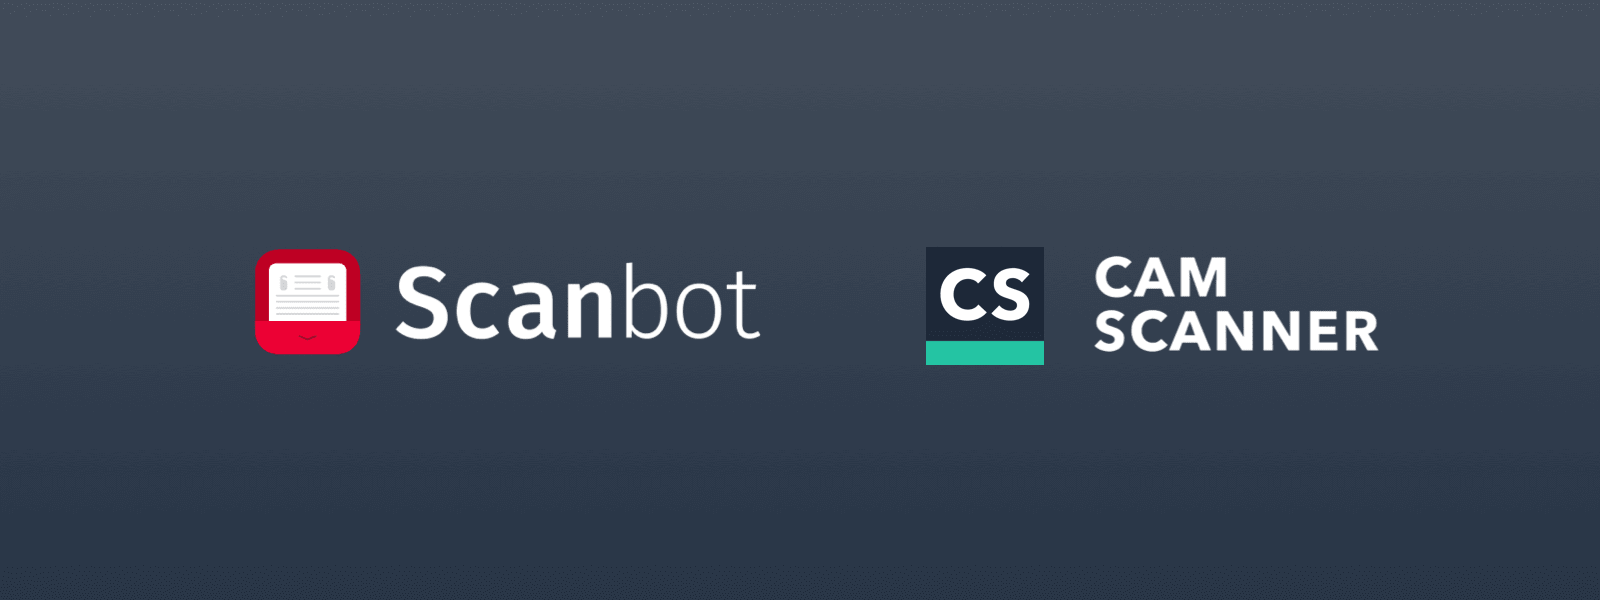 Best Filmmaker Software and Tools - Best Filmmaking Apps - Scanbot - Camscanner